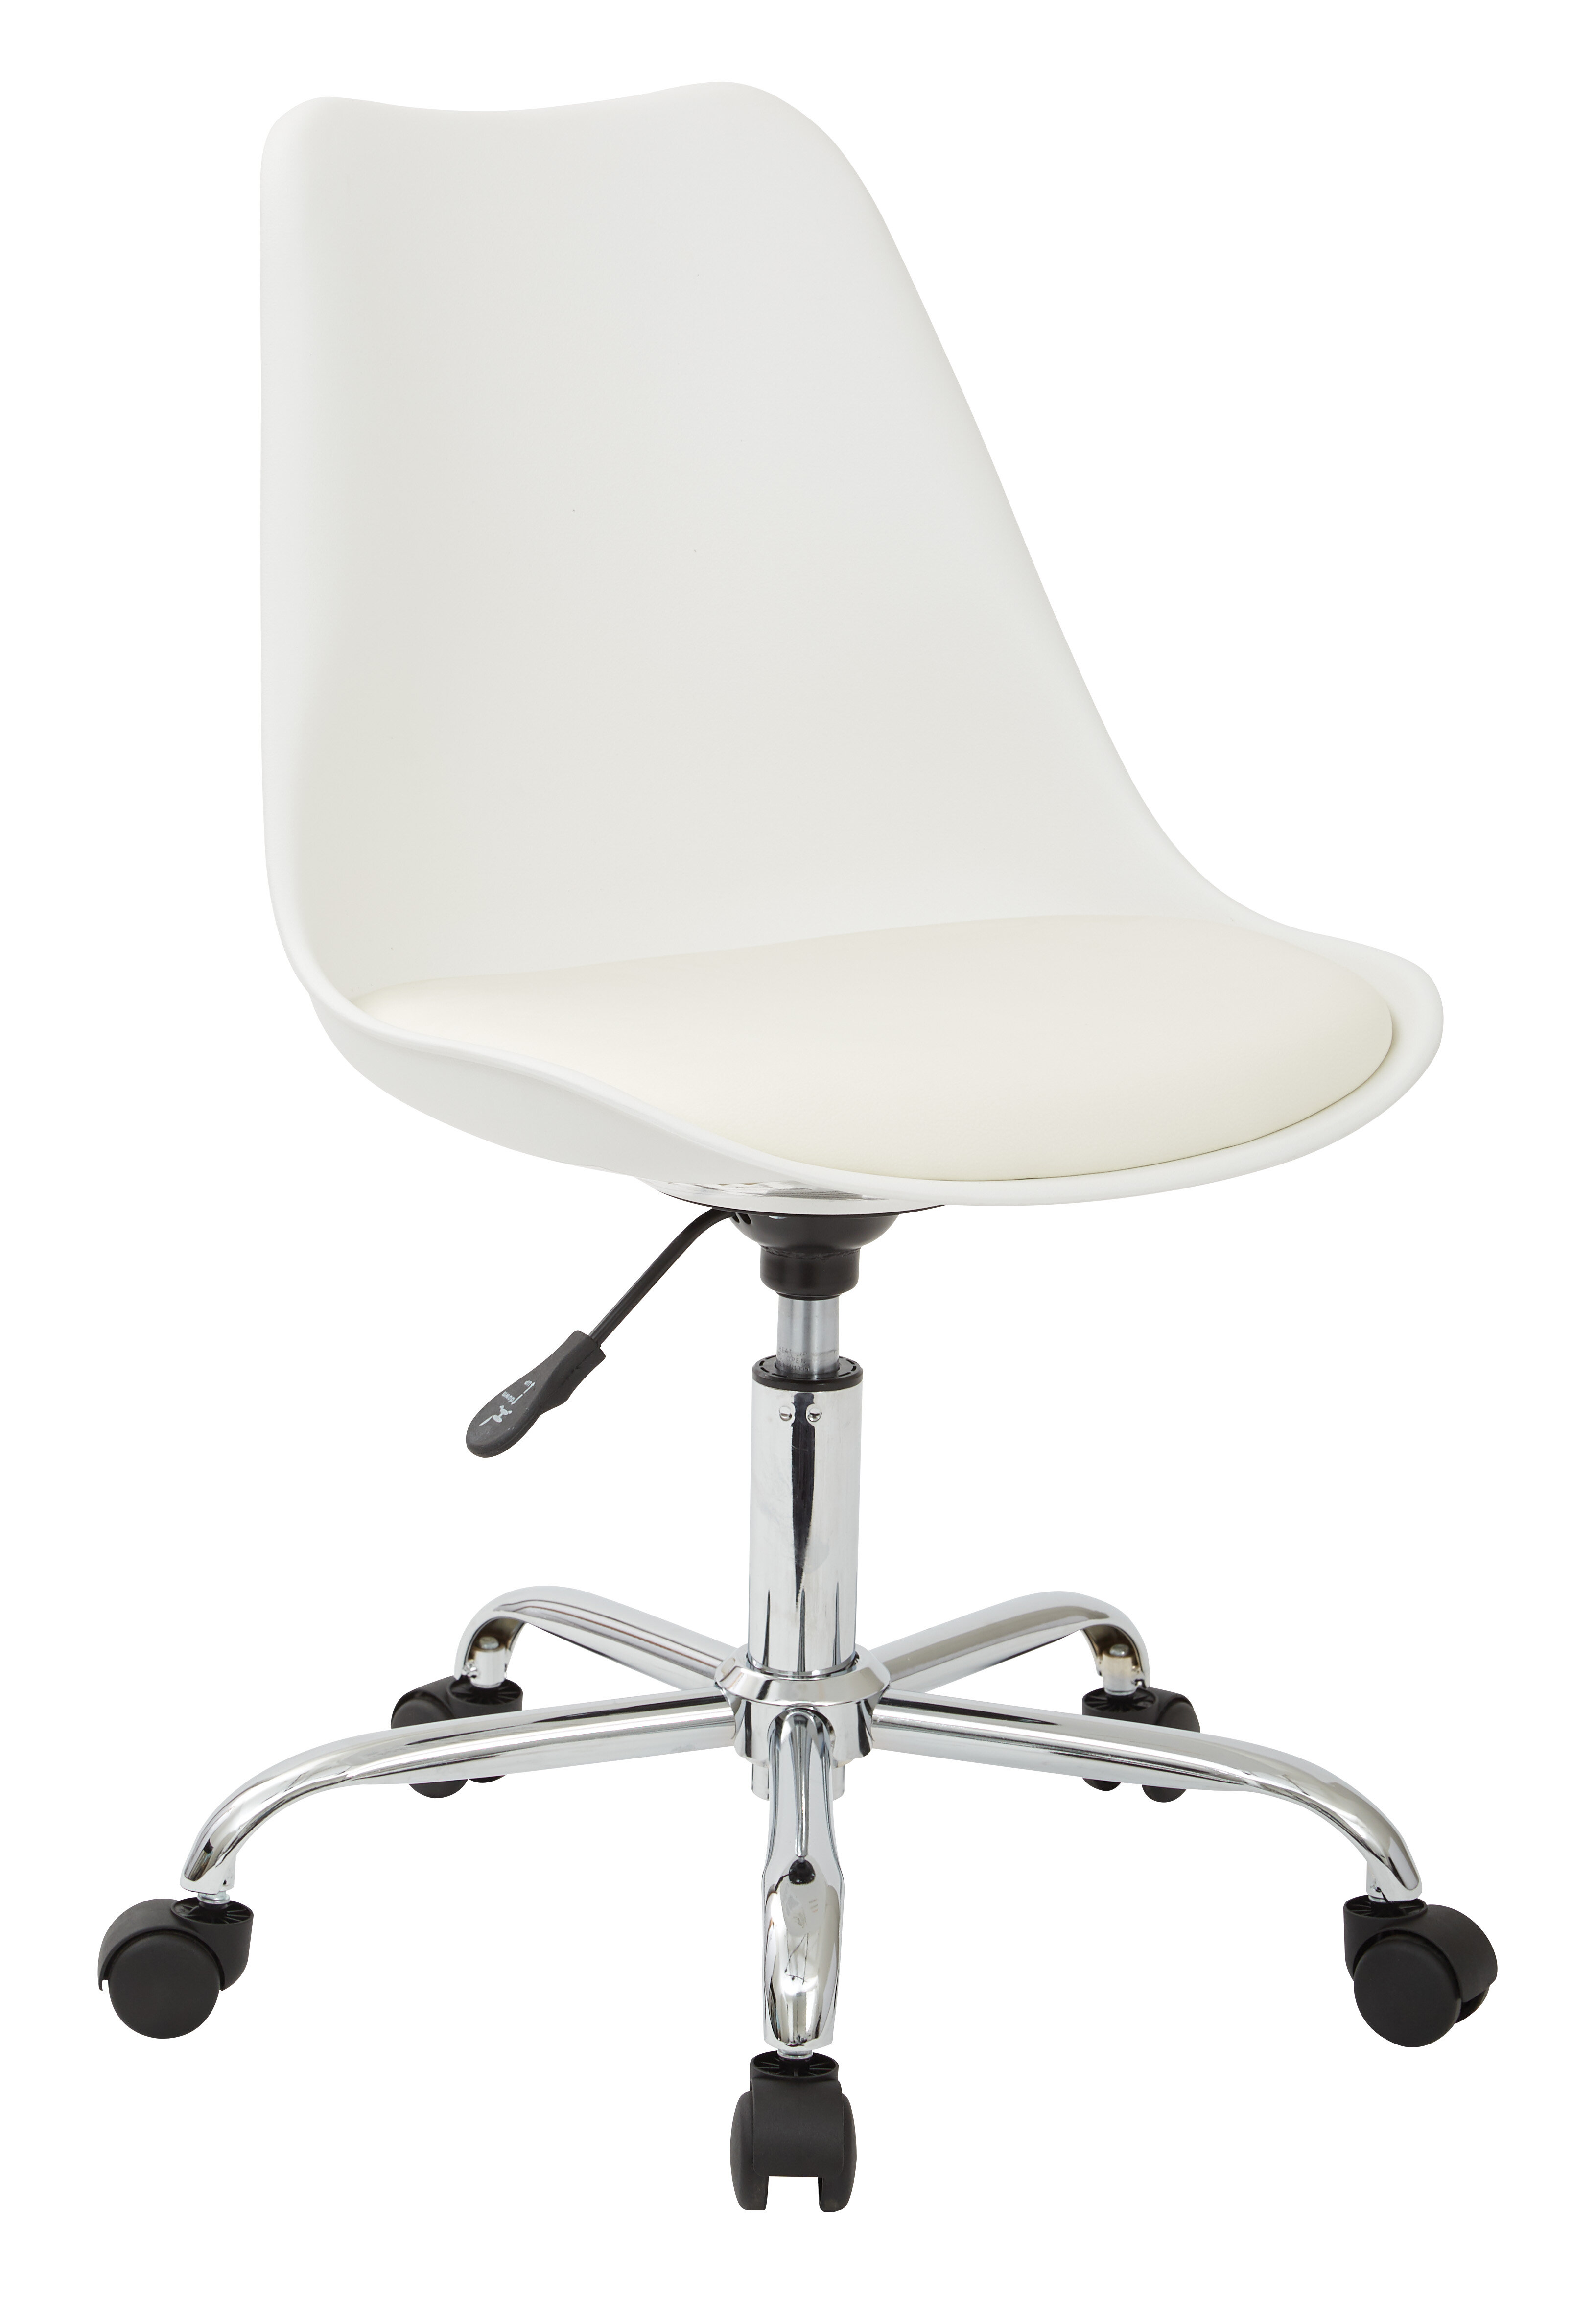 Charmant Zipcode Design Christofor Desk Chair U0026 Reviews | Wayfair